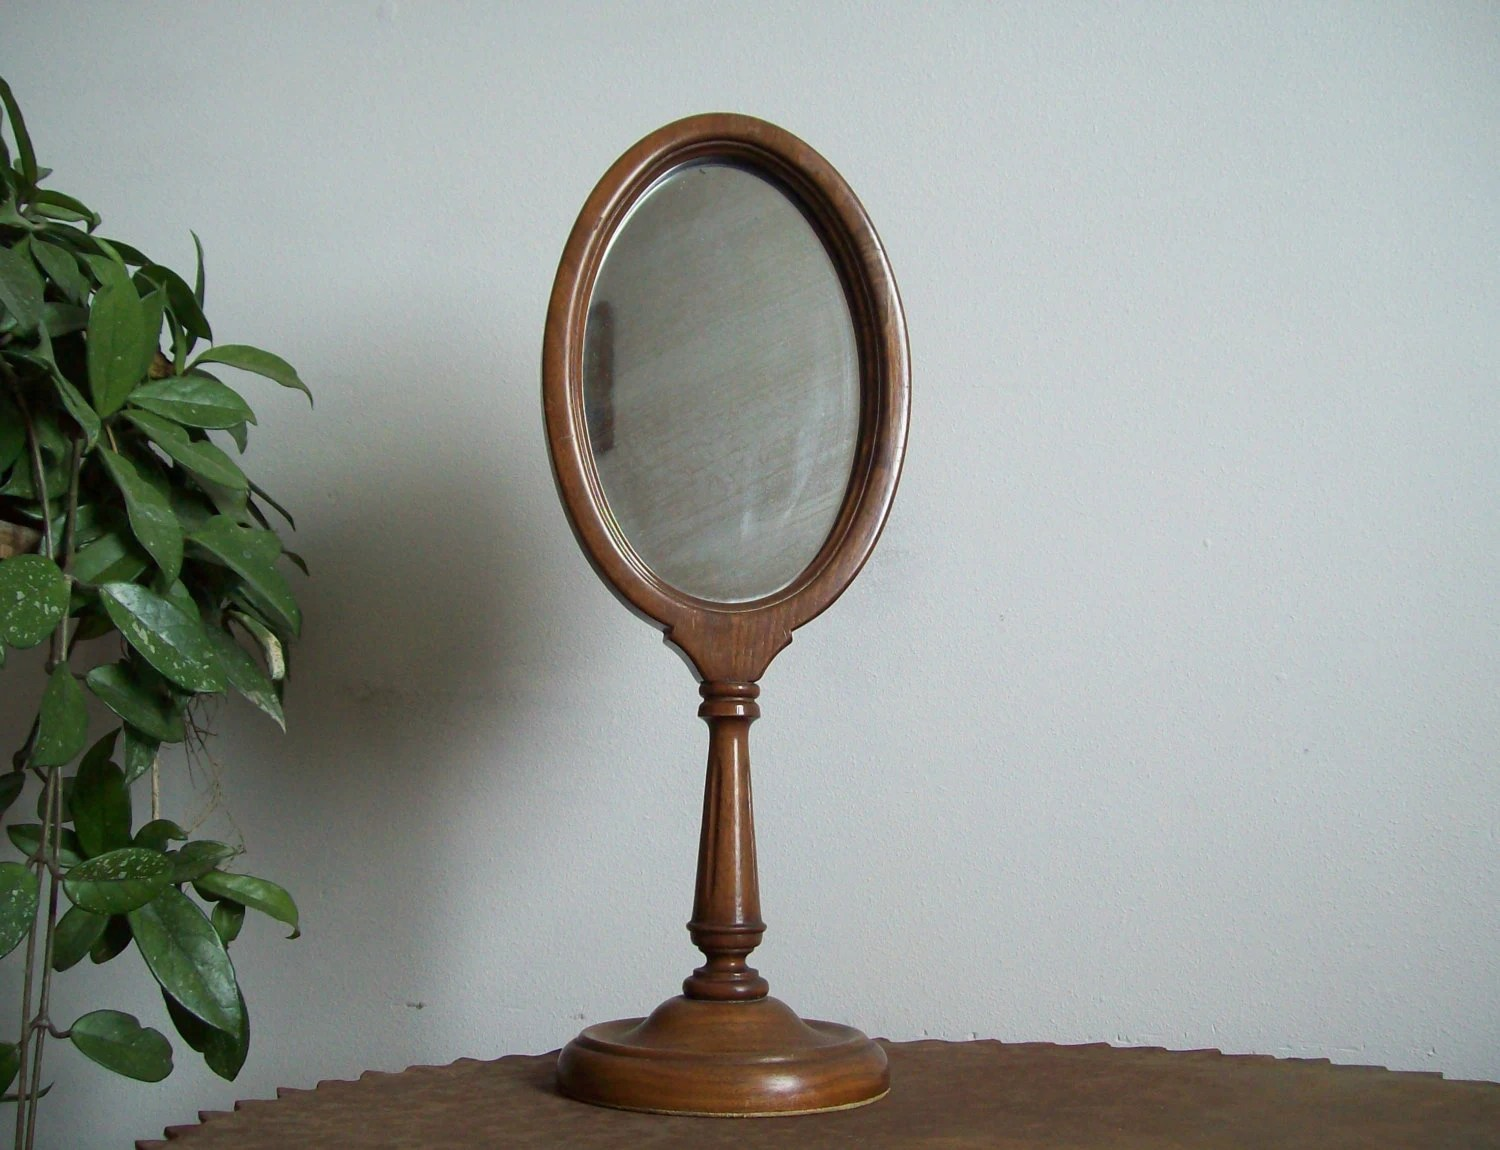 Antique Pedestal Dresser Mirror Oval Great Mirror